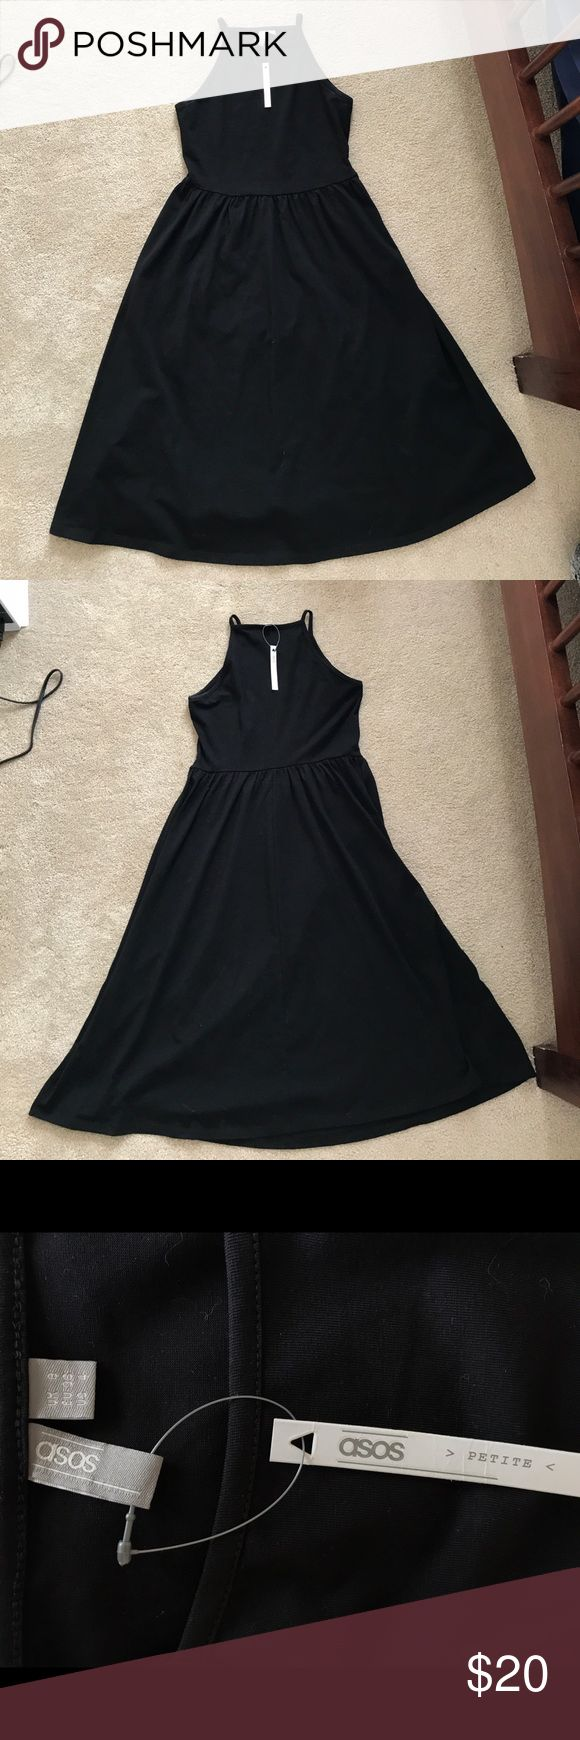 NWT Black Asos Petite Midi Dress 96% cotton, 4% elasthane. ASOS Petite Dresses Midi